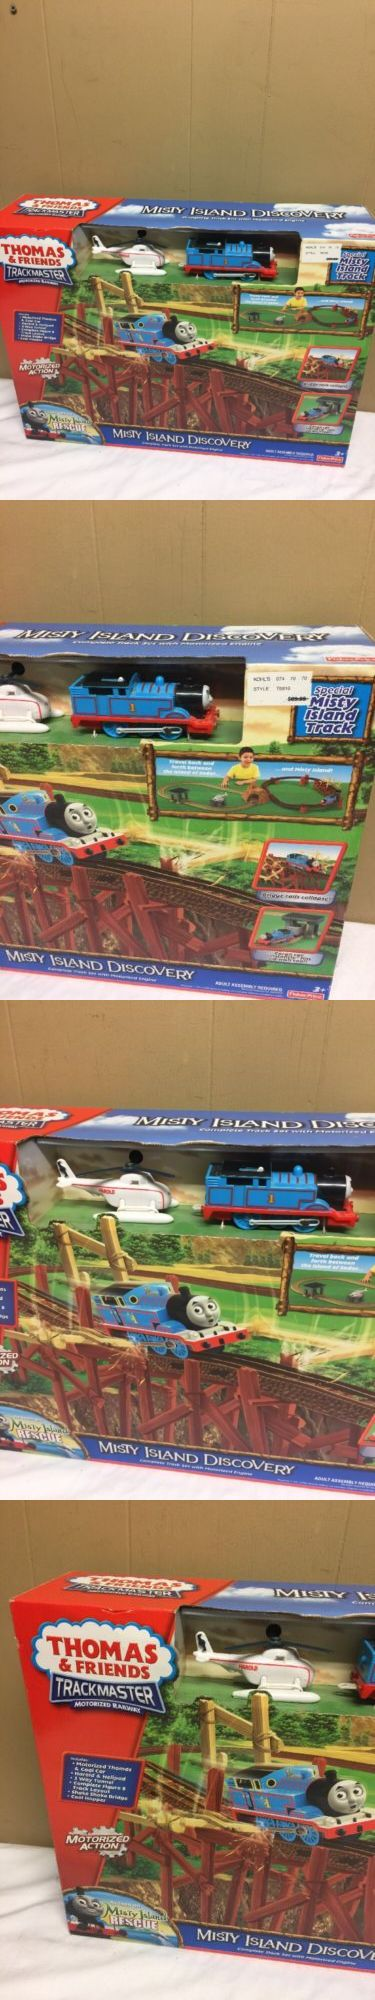 Other Thomas Toys 2629: Fisher Price Thomas And Friends Trackmaster Misty Island Discovery New!!! -> BUY IT NOW ONLY: $69.99 on eBay!